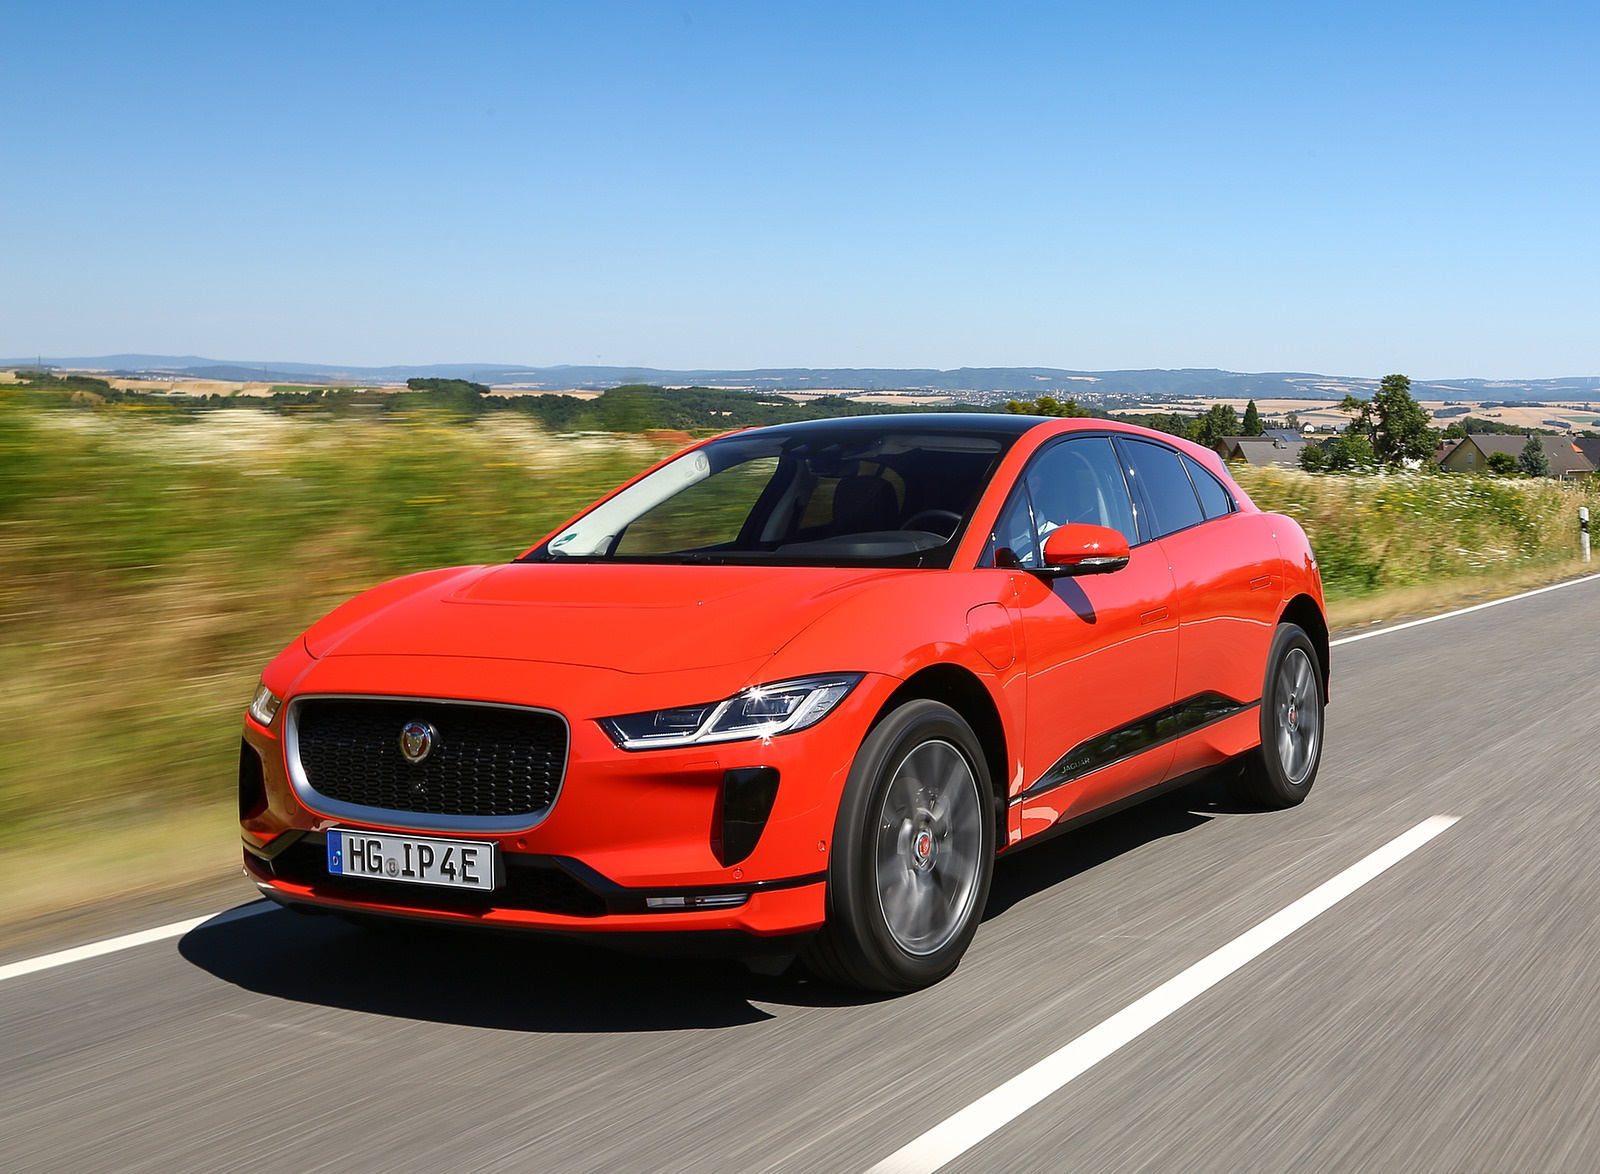 2019 Jaguar I-PACE EV400 AWD HSE First Edition (Color: Photon Red) Front Three-Quarter Wallpapers #21 of 192